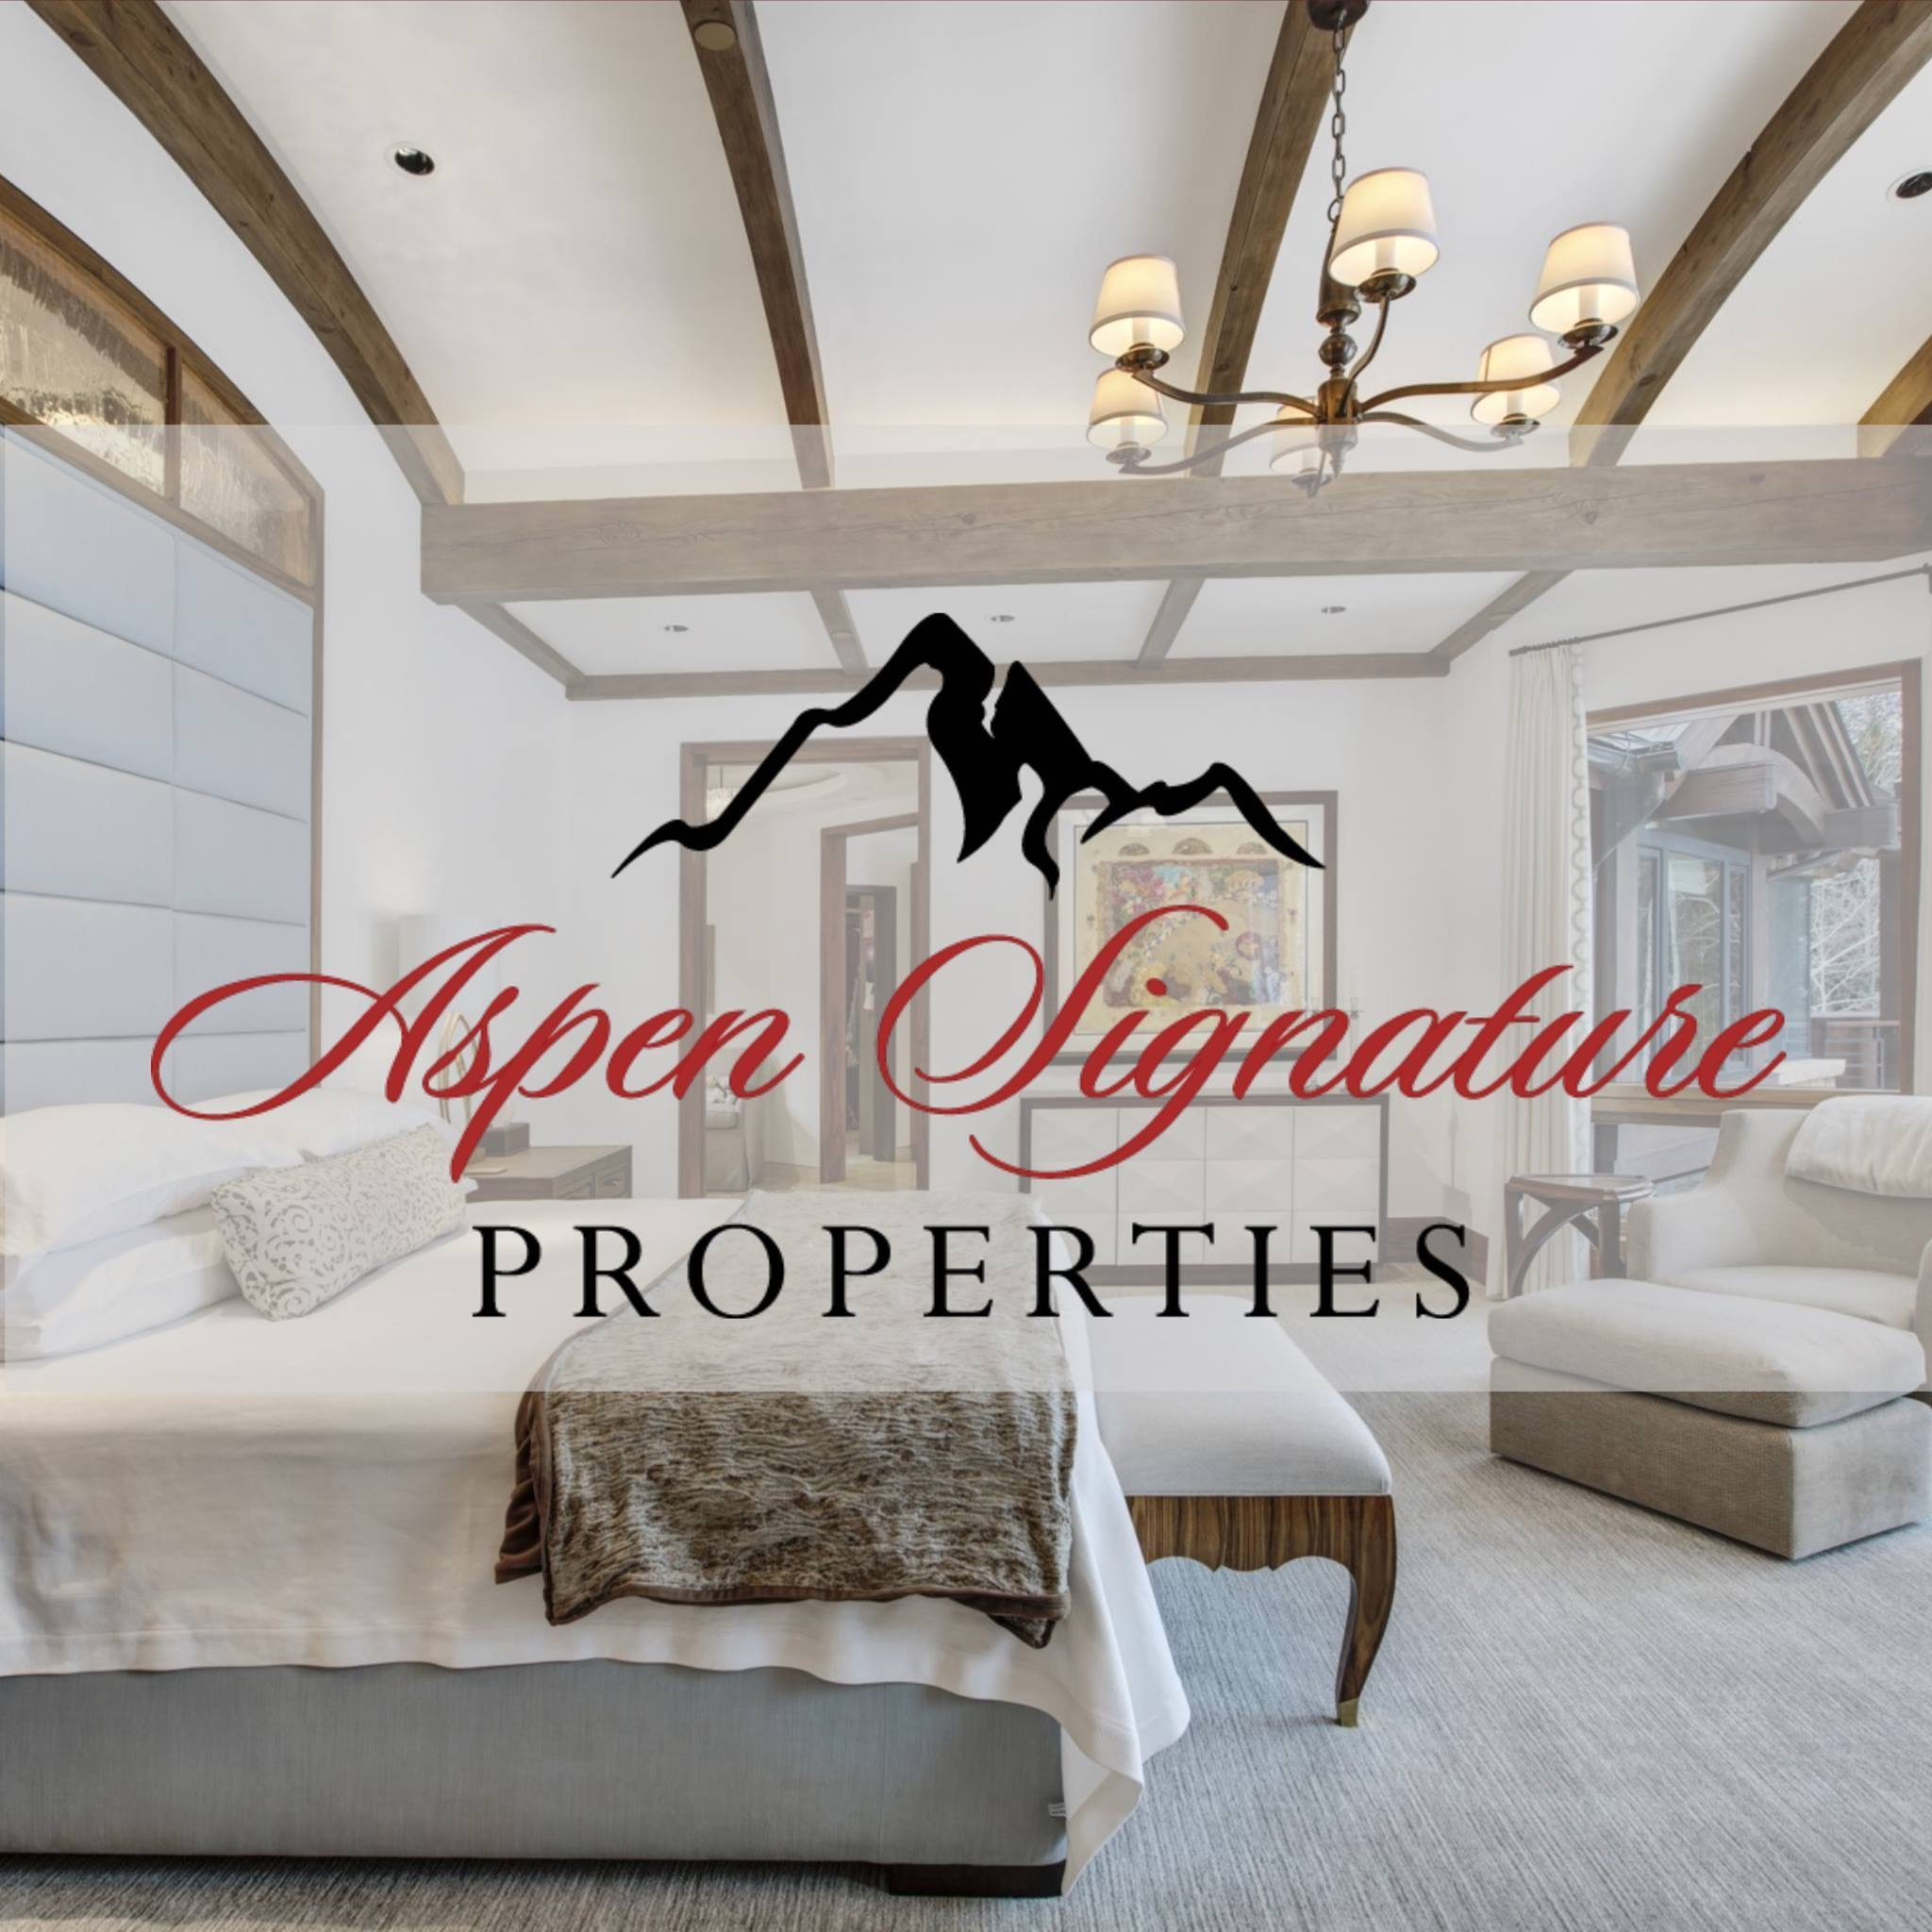 ASPEN SIGNATURE PROPERTIES - REAL ESTATE Agency representing spectacular luxury vacation rental propertieS.@ASPENSIGNATUREPROPERTIESSERVICES|| MEDIA MANAGEMENT & CONTENT CREATION